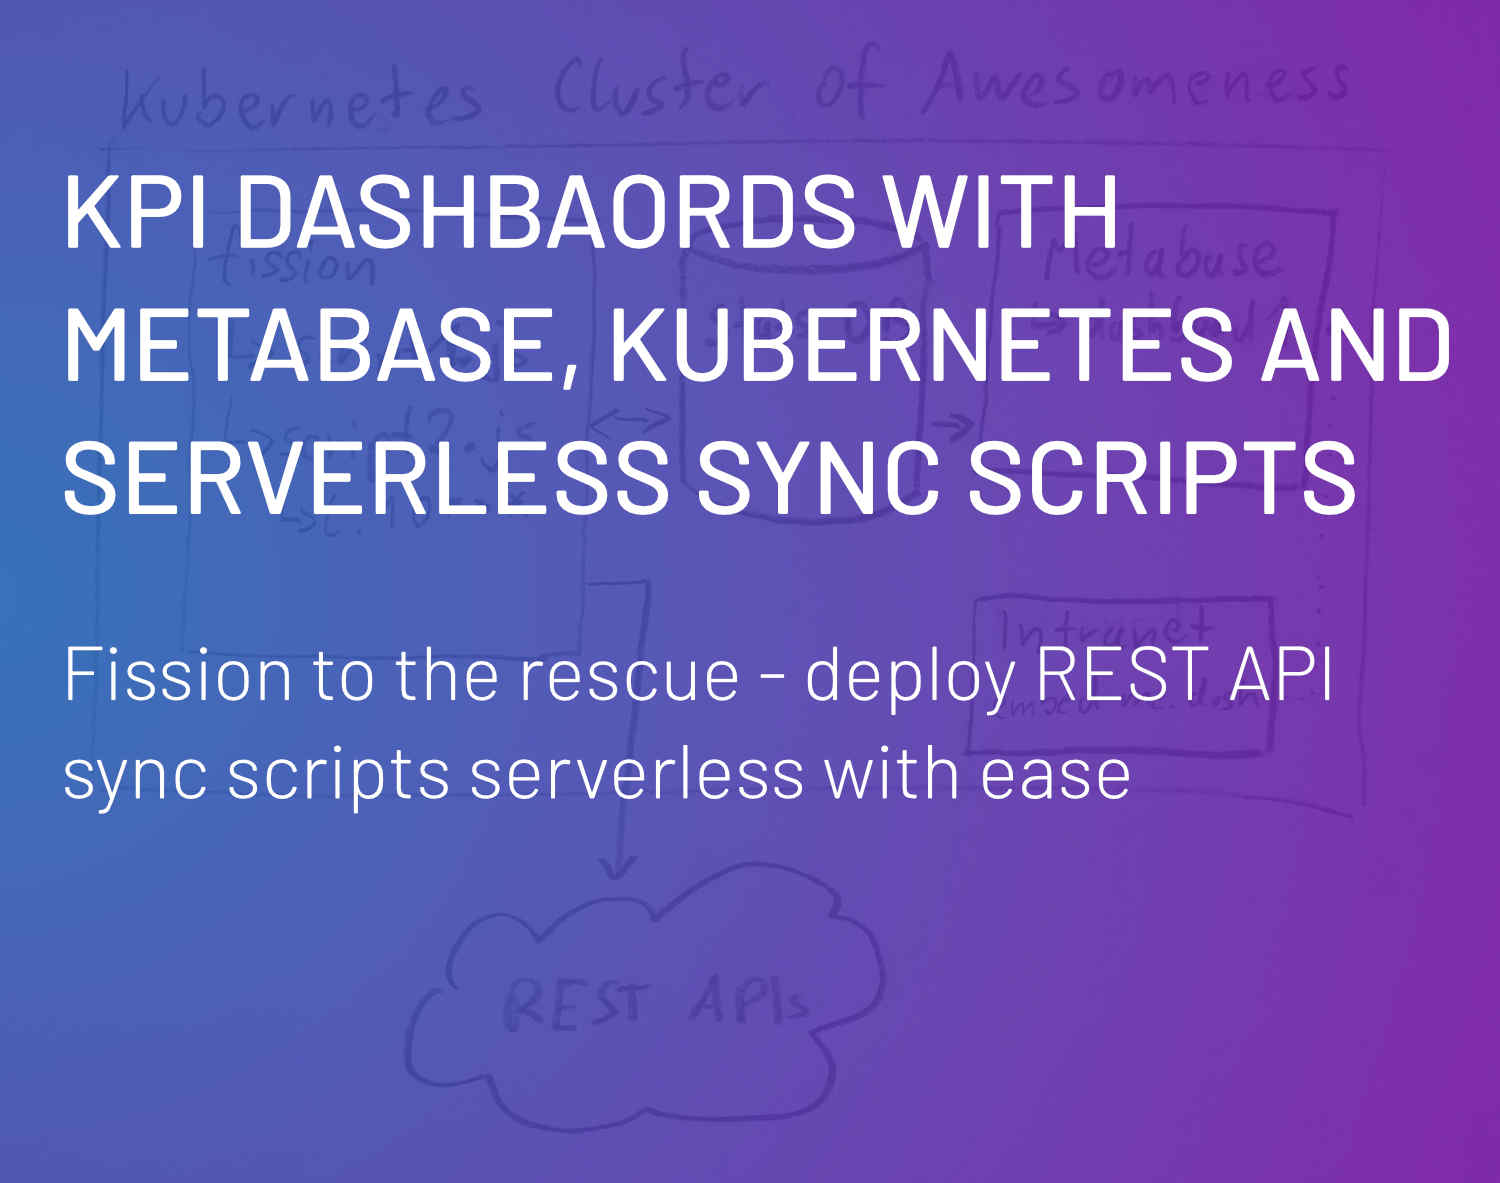 KPI Dashboards with Metabase, Kubernetes and Serverless Sync